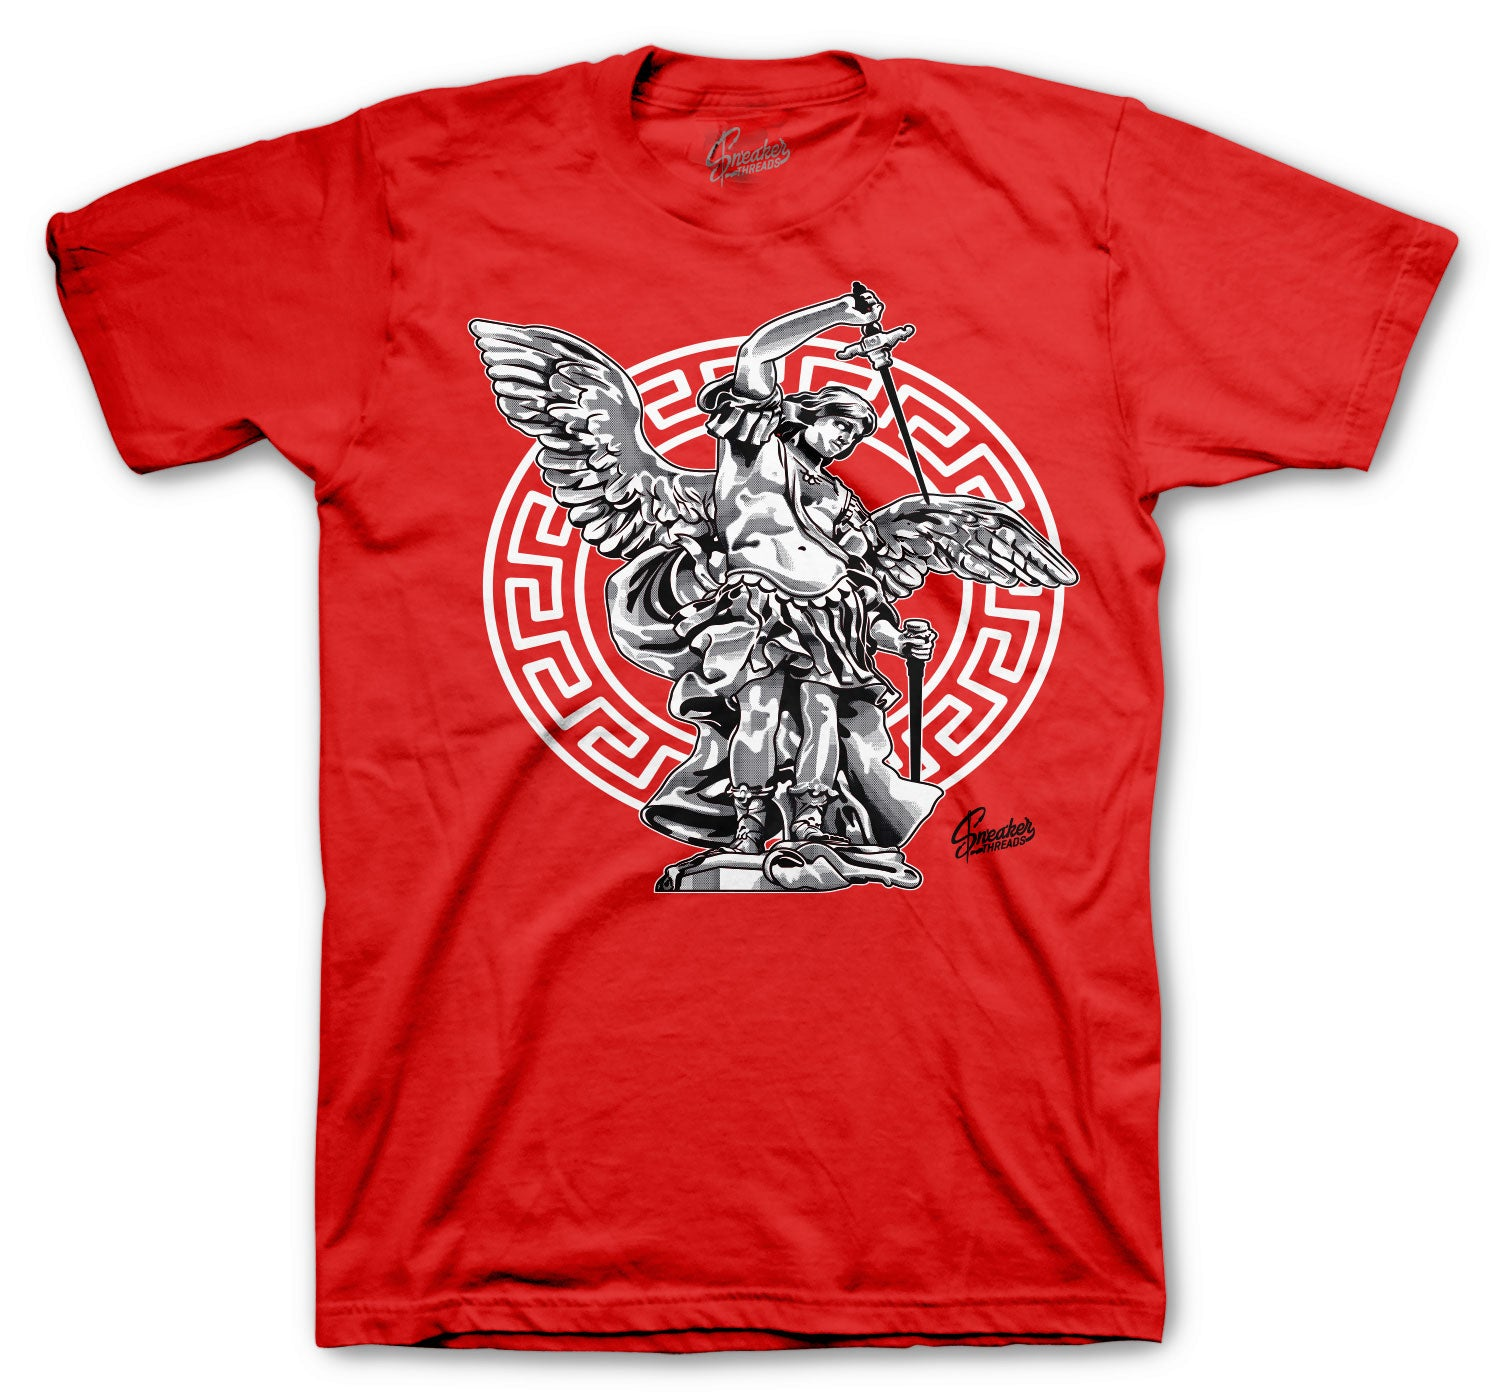 Dunk SB Chicago St. Michael Shirt